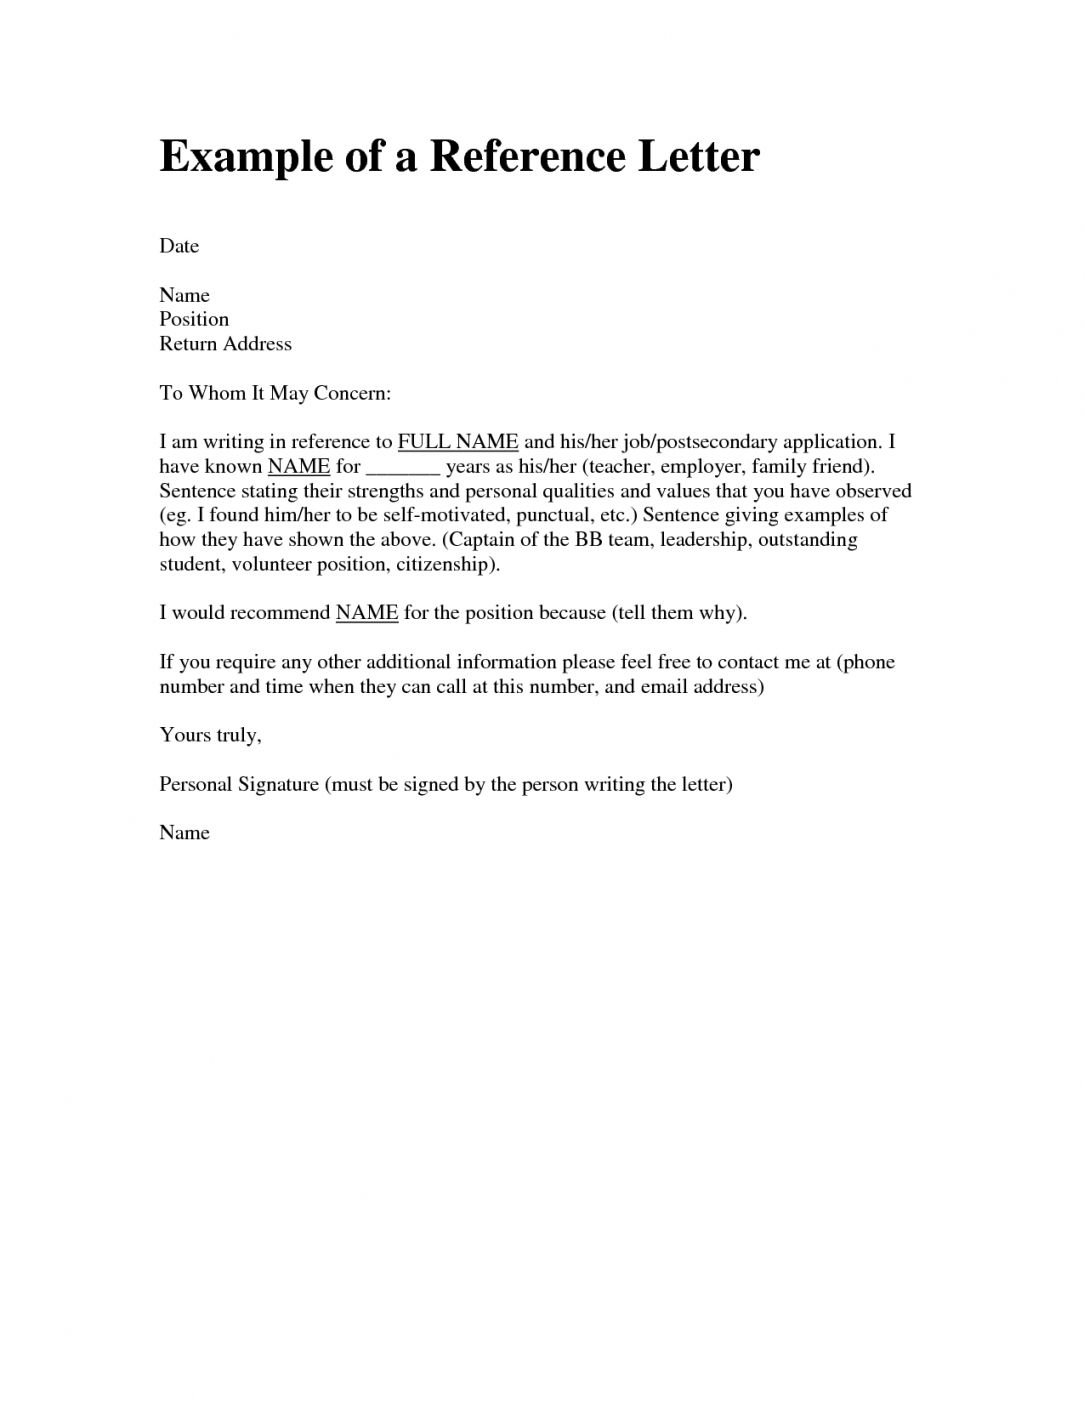 Tenant Reference Letter Sample From Employer from i.pinimg.com